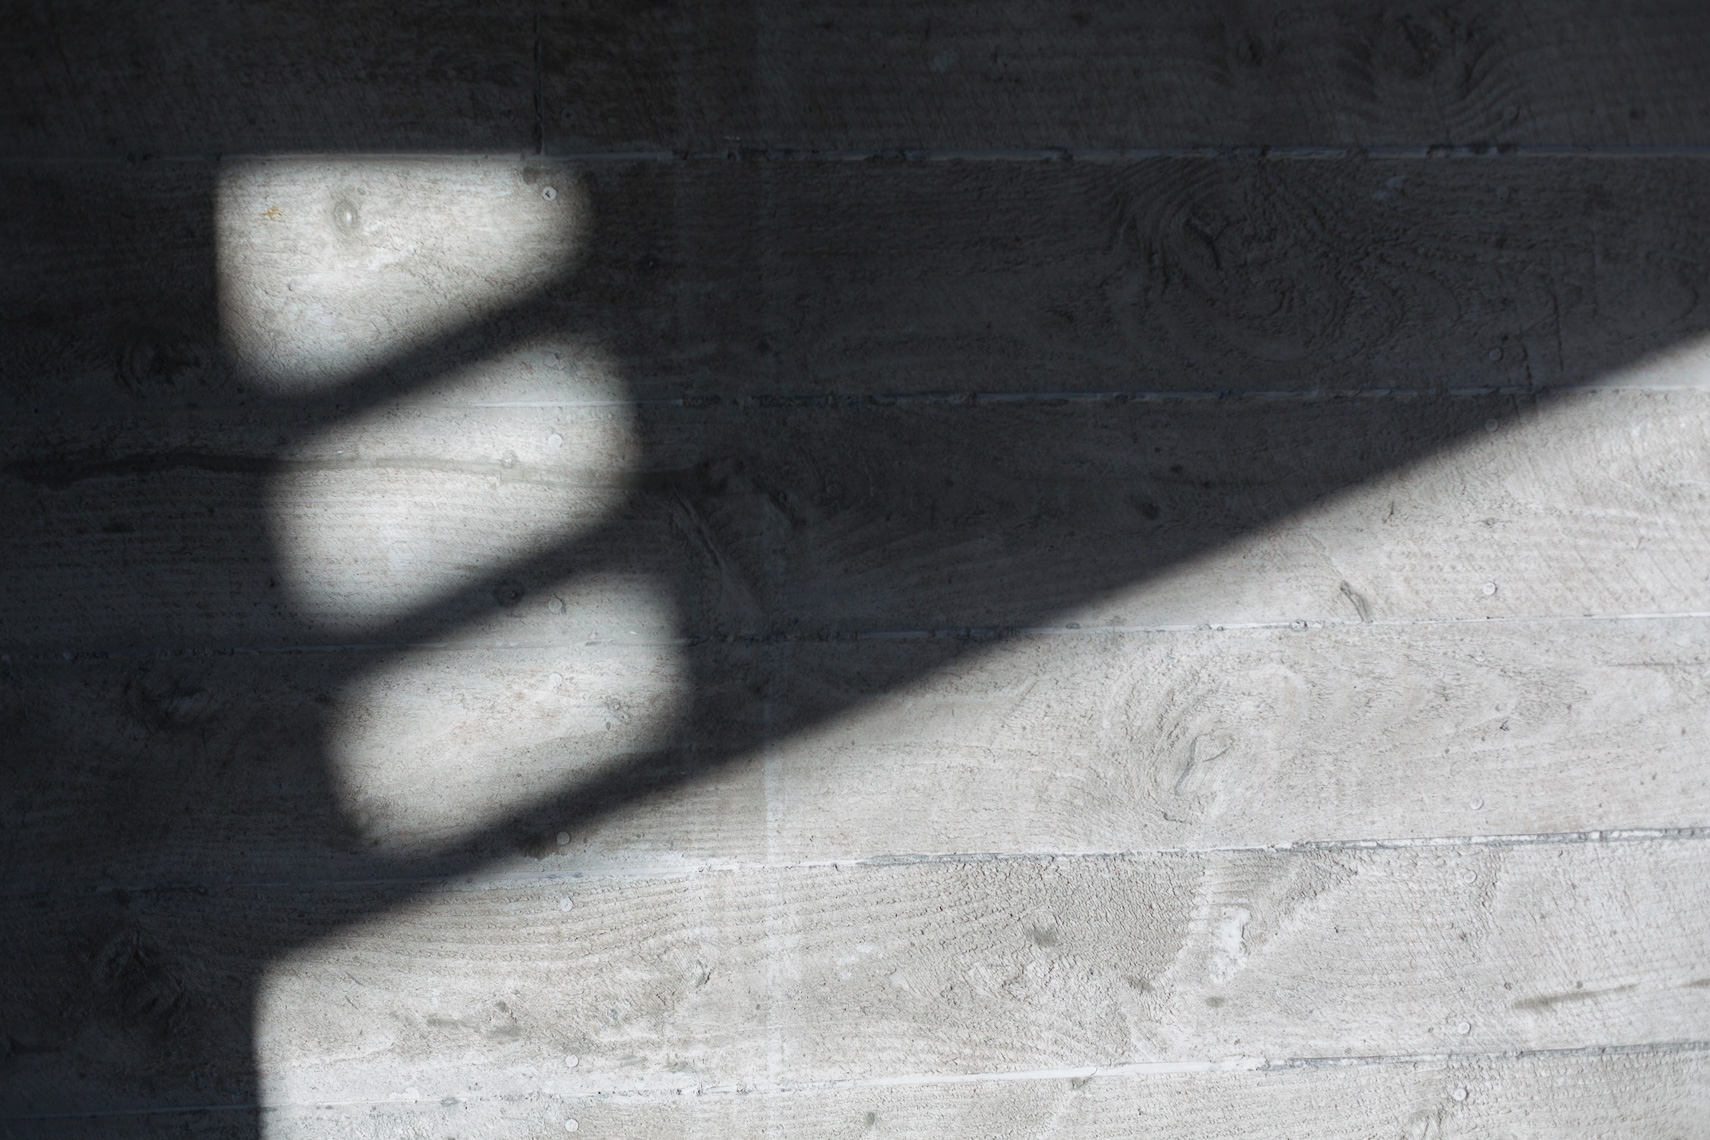 Architectural Shadows on concrete by Paul Green Photographer